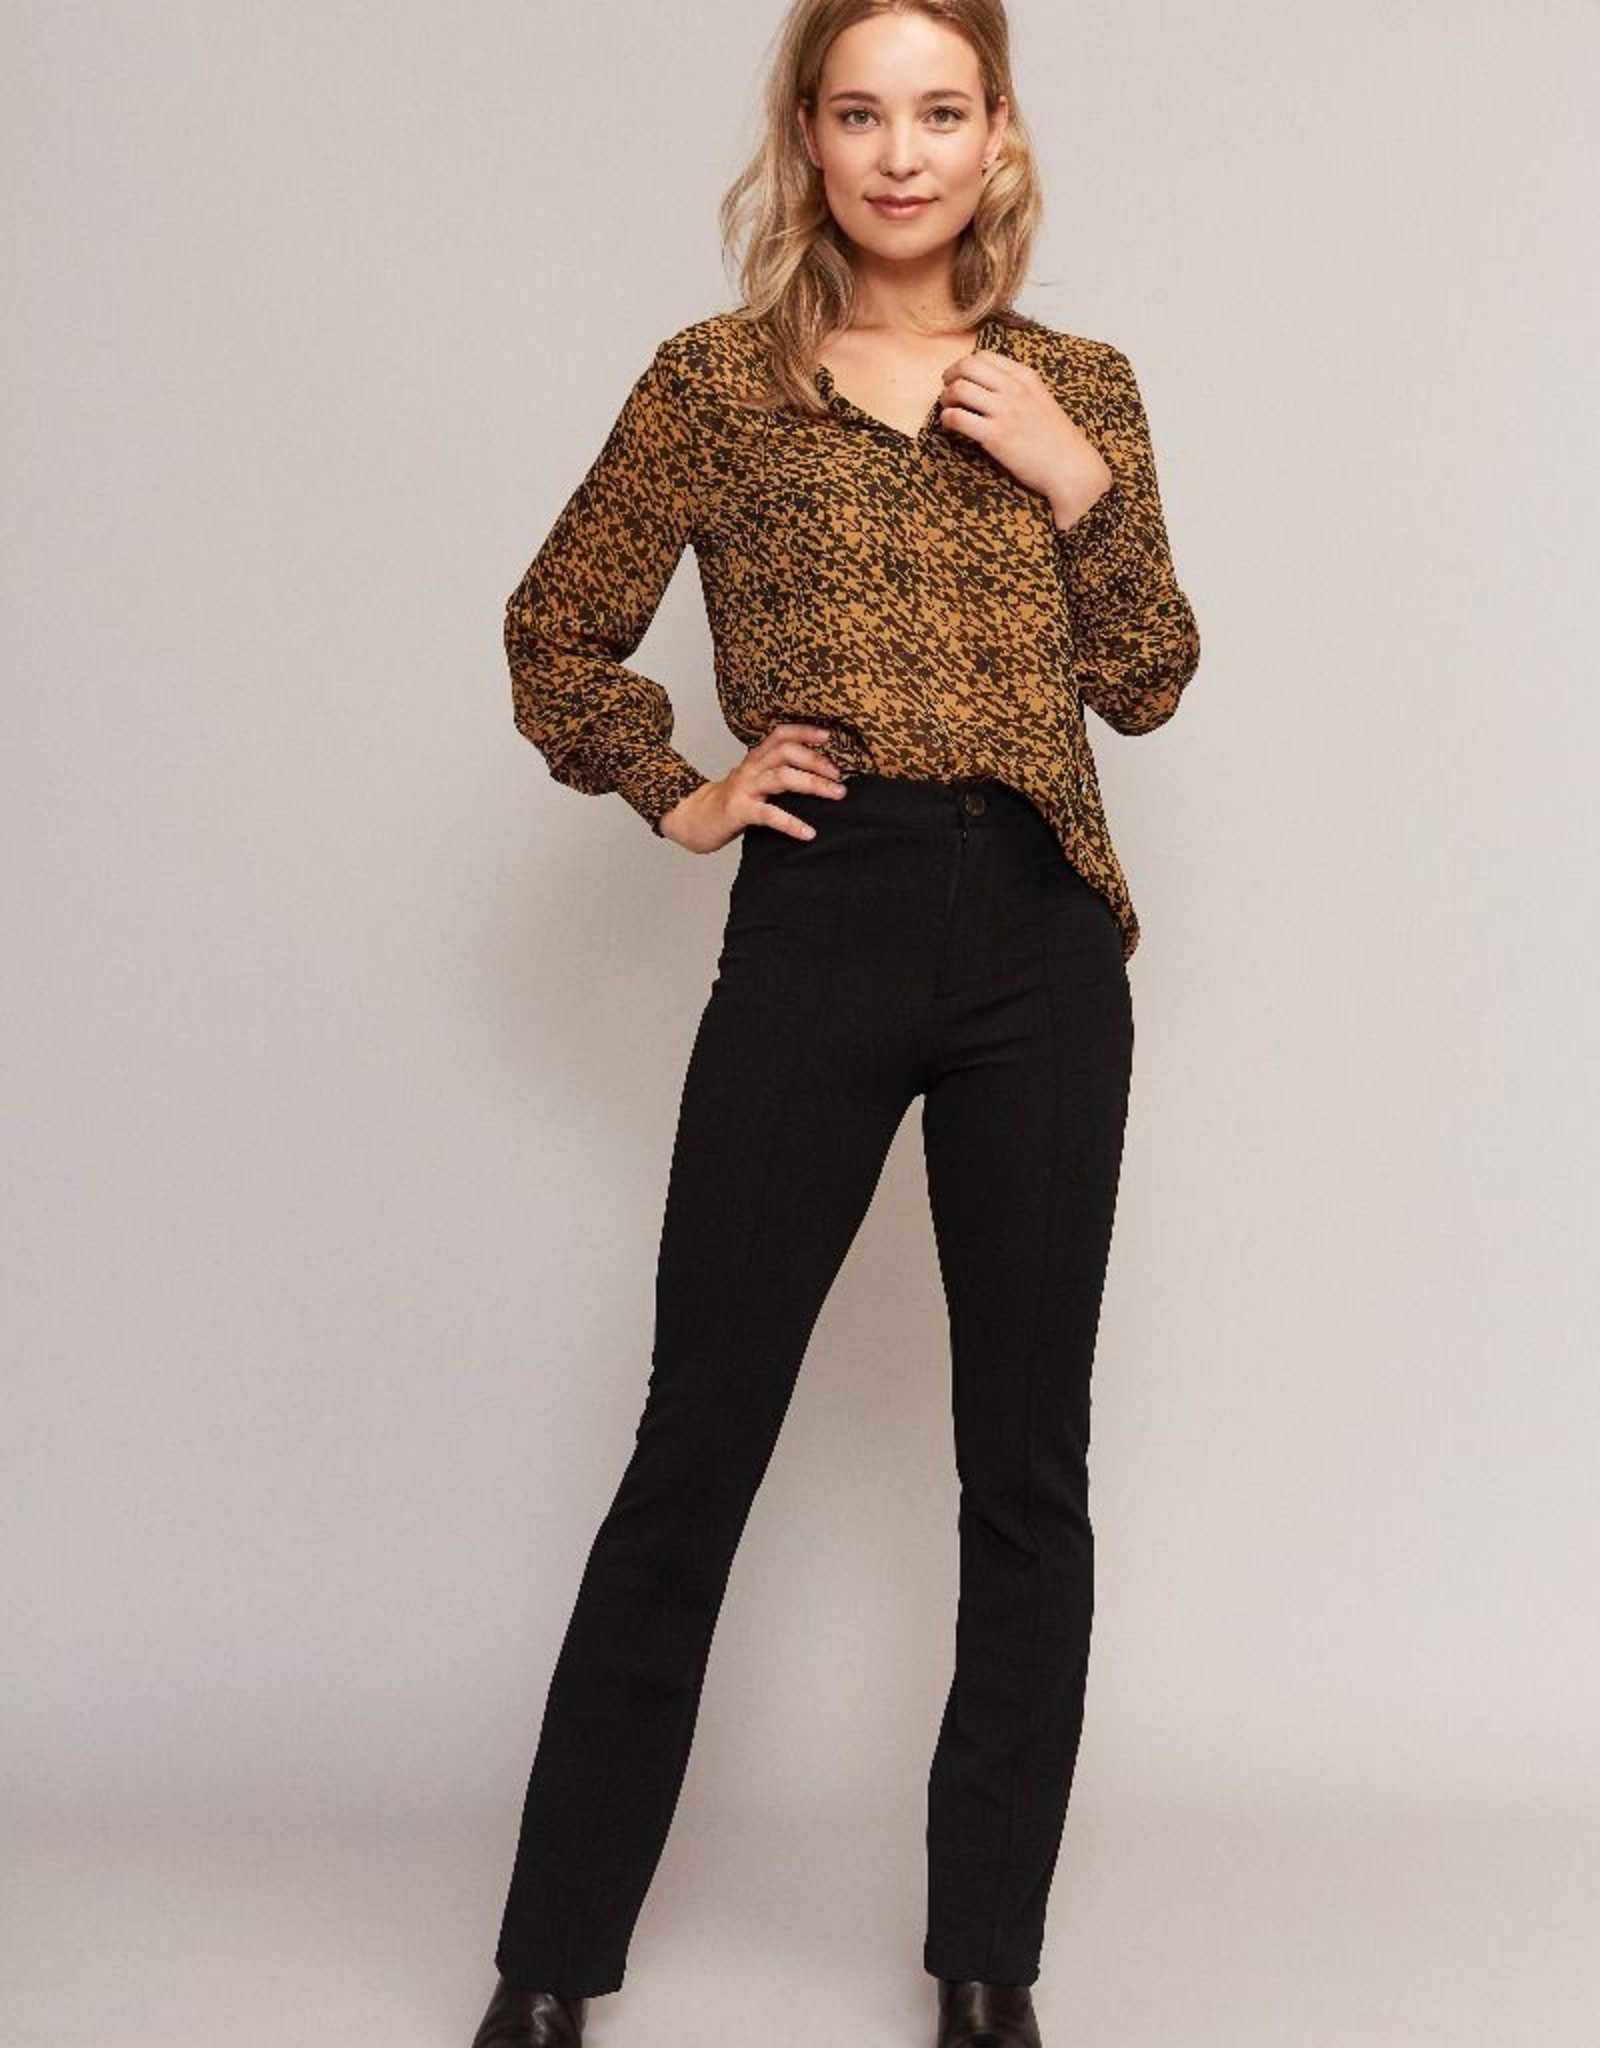 C&S  Blouse Ocher Yellow With Black